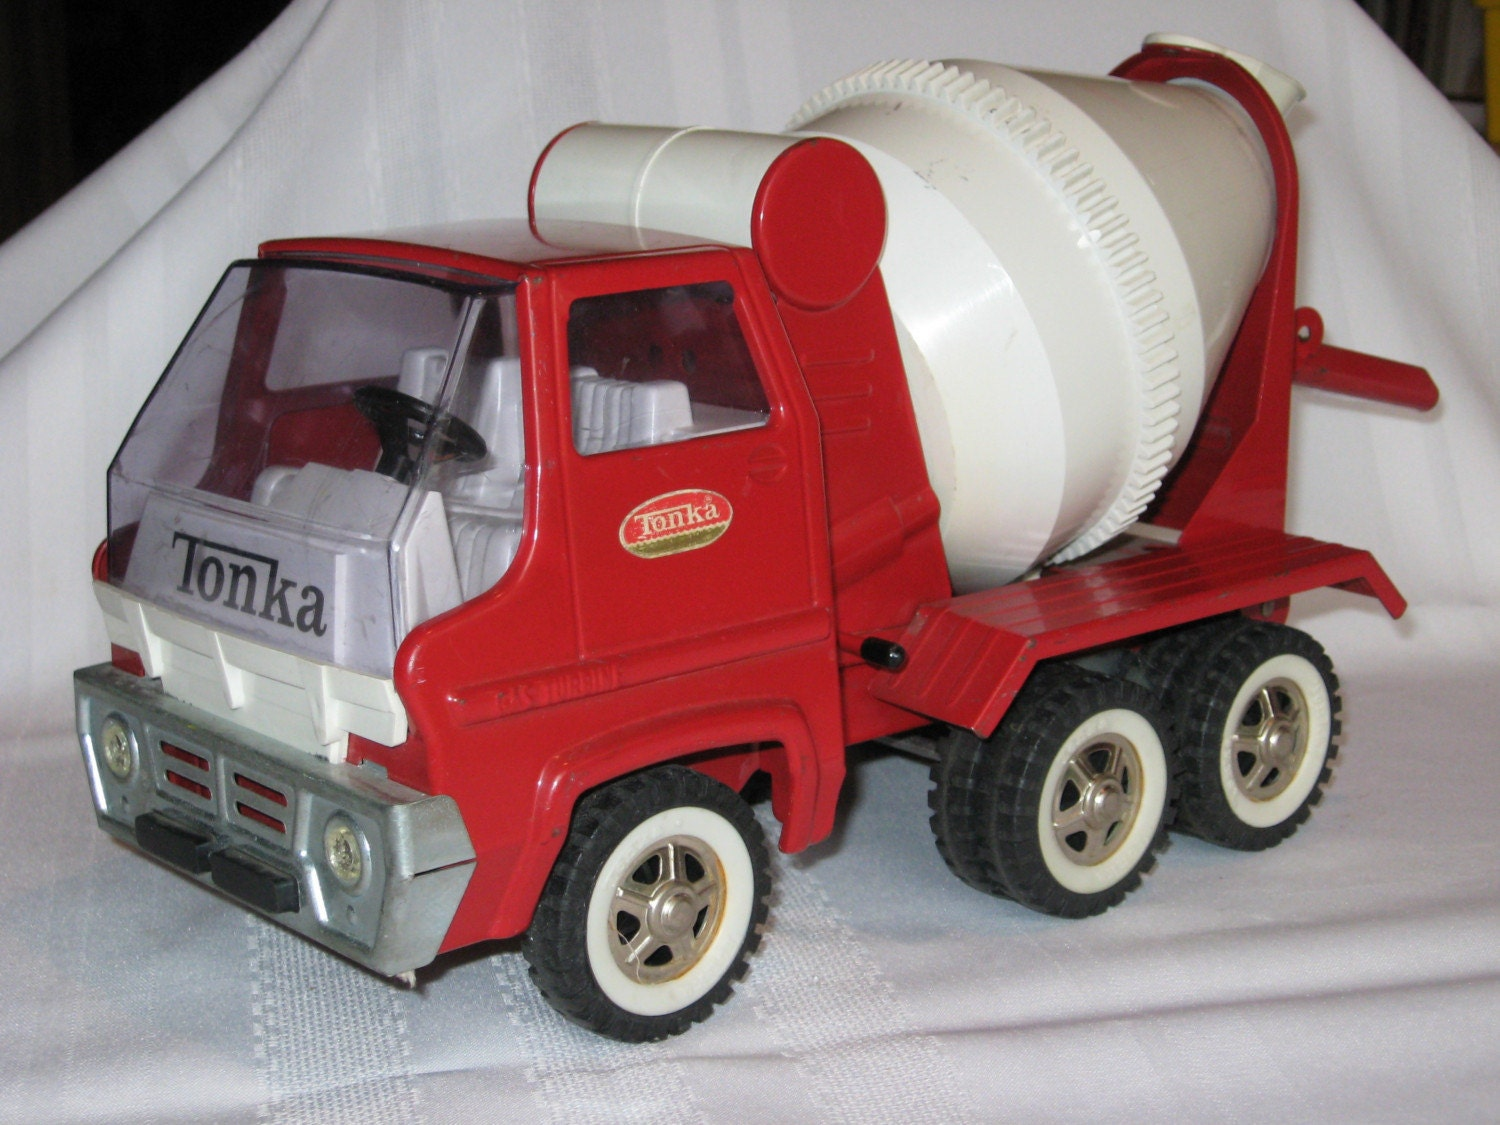 MISCELLANEOUS antique collectible Diecast cars trucks